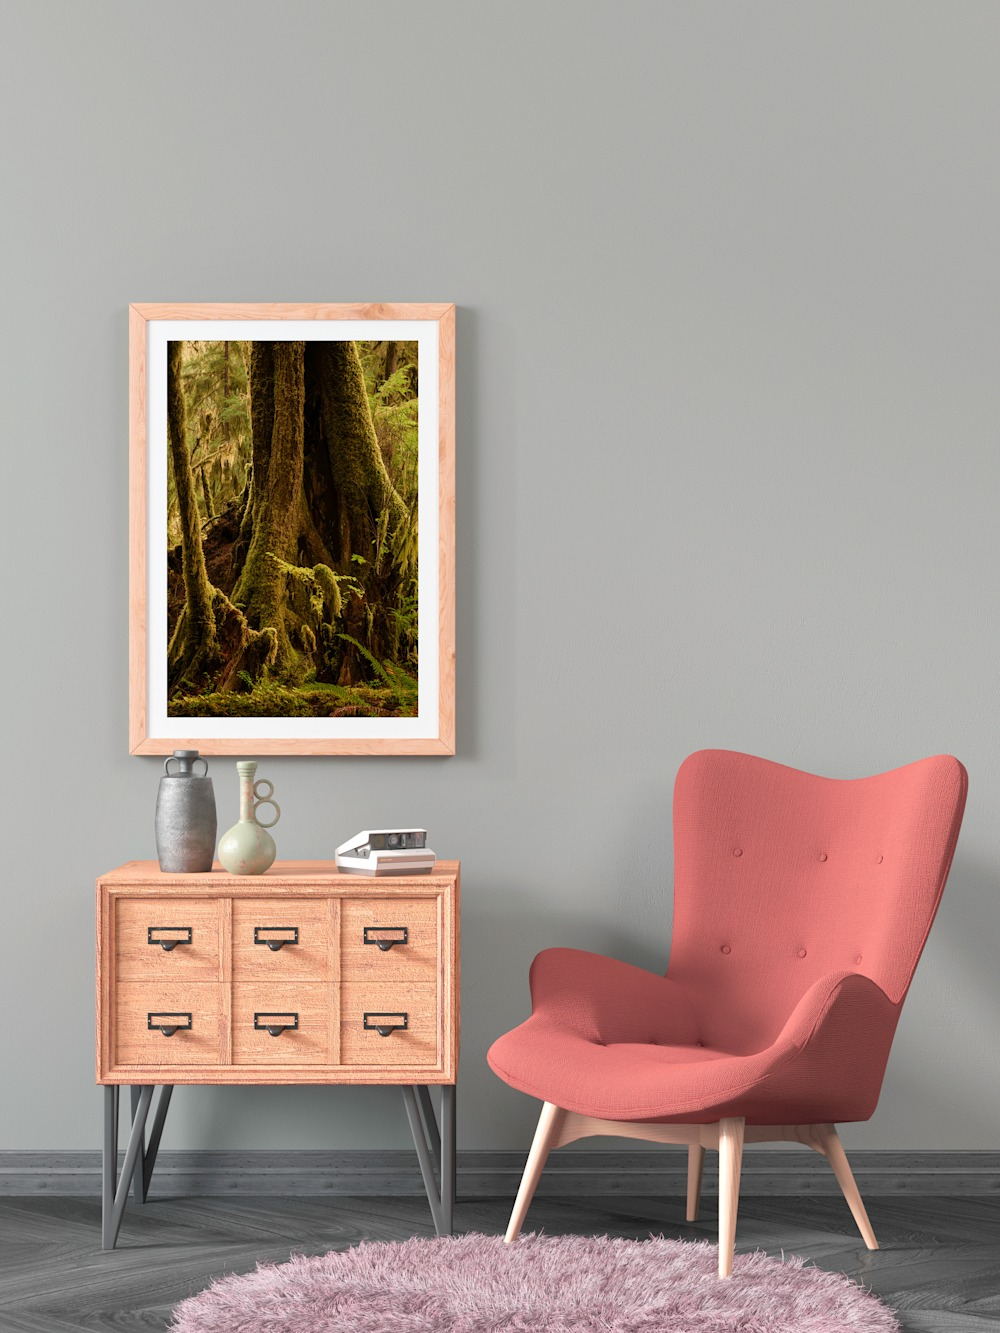 New Print Release: Tree, Queets River Valley, Olympic National Park, Washington, 2020